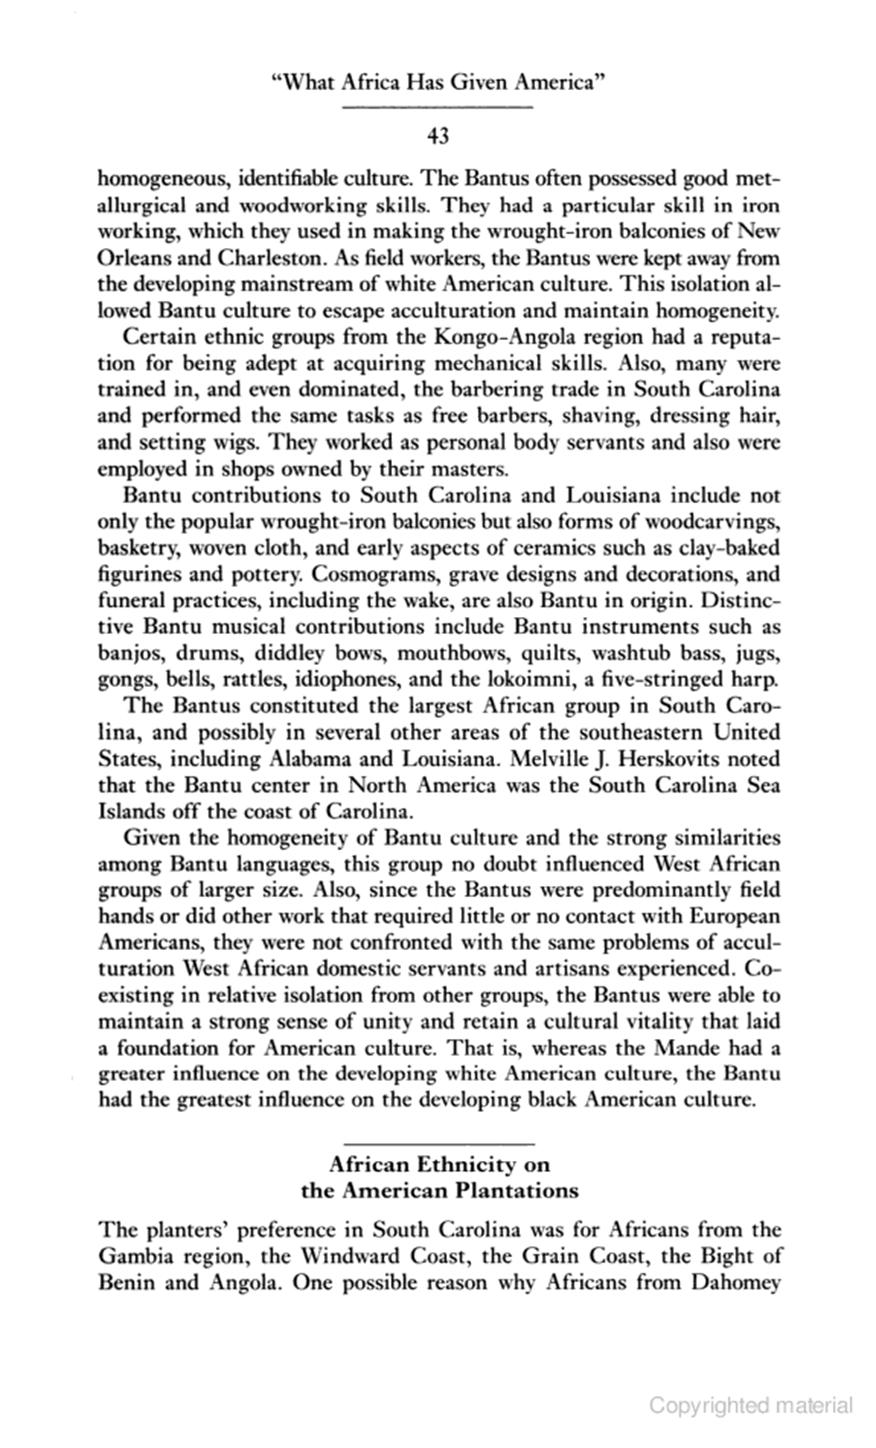 african influence on western culture essay